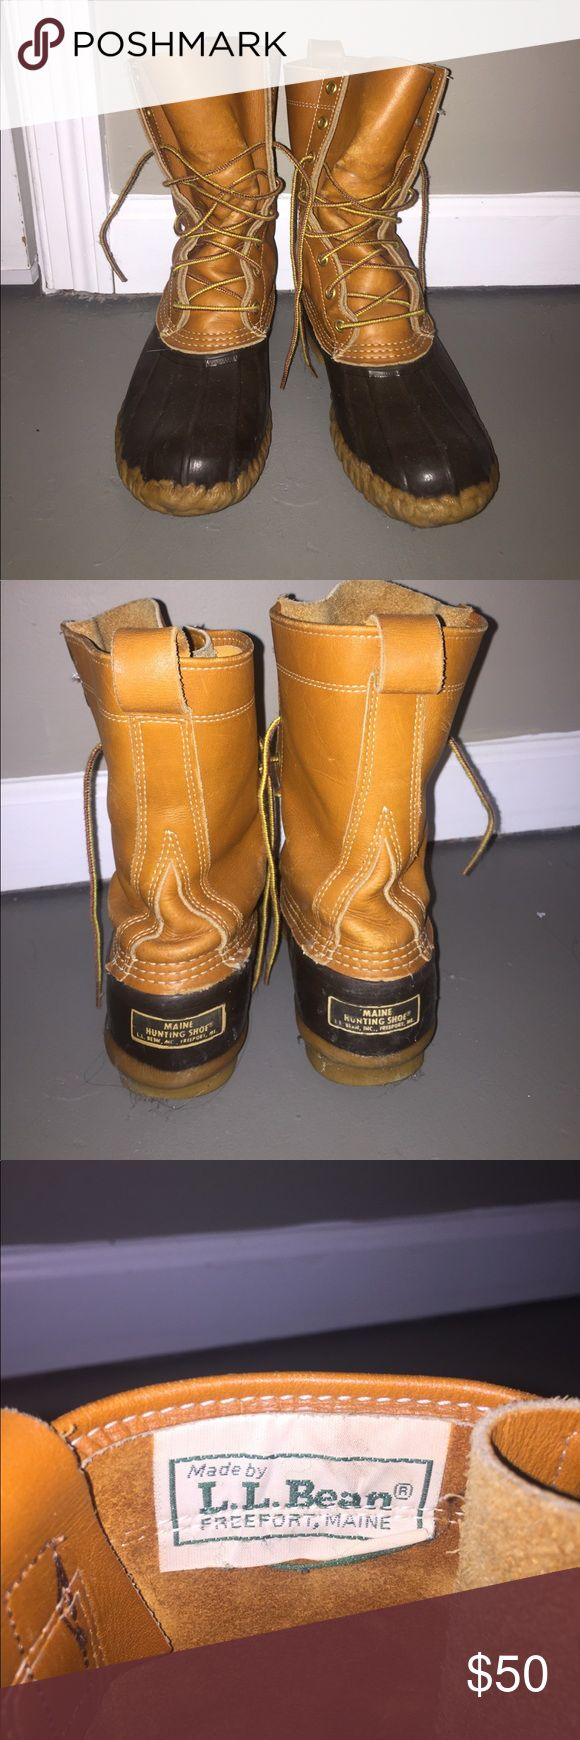 LL Bean Boots Women's size 8. Vintage! Great conditions. From the 1980's, but great conditions since they are such great quality. L.L. Bean Shoes Winter & Rain Boots